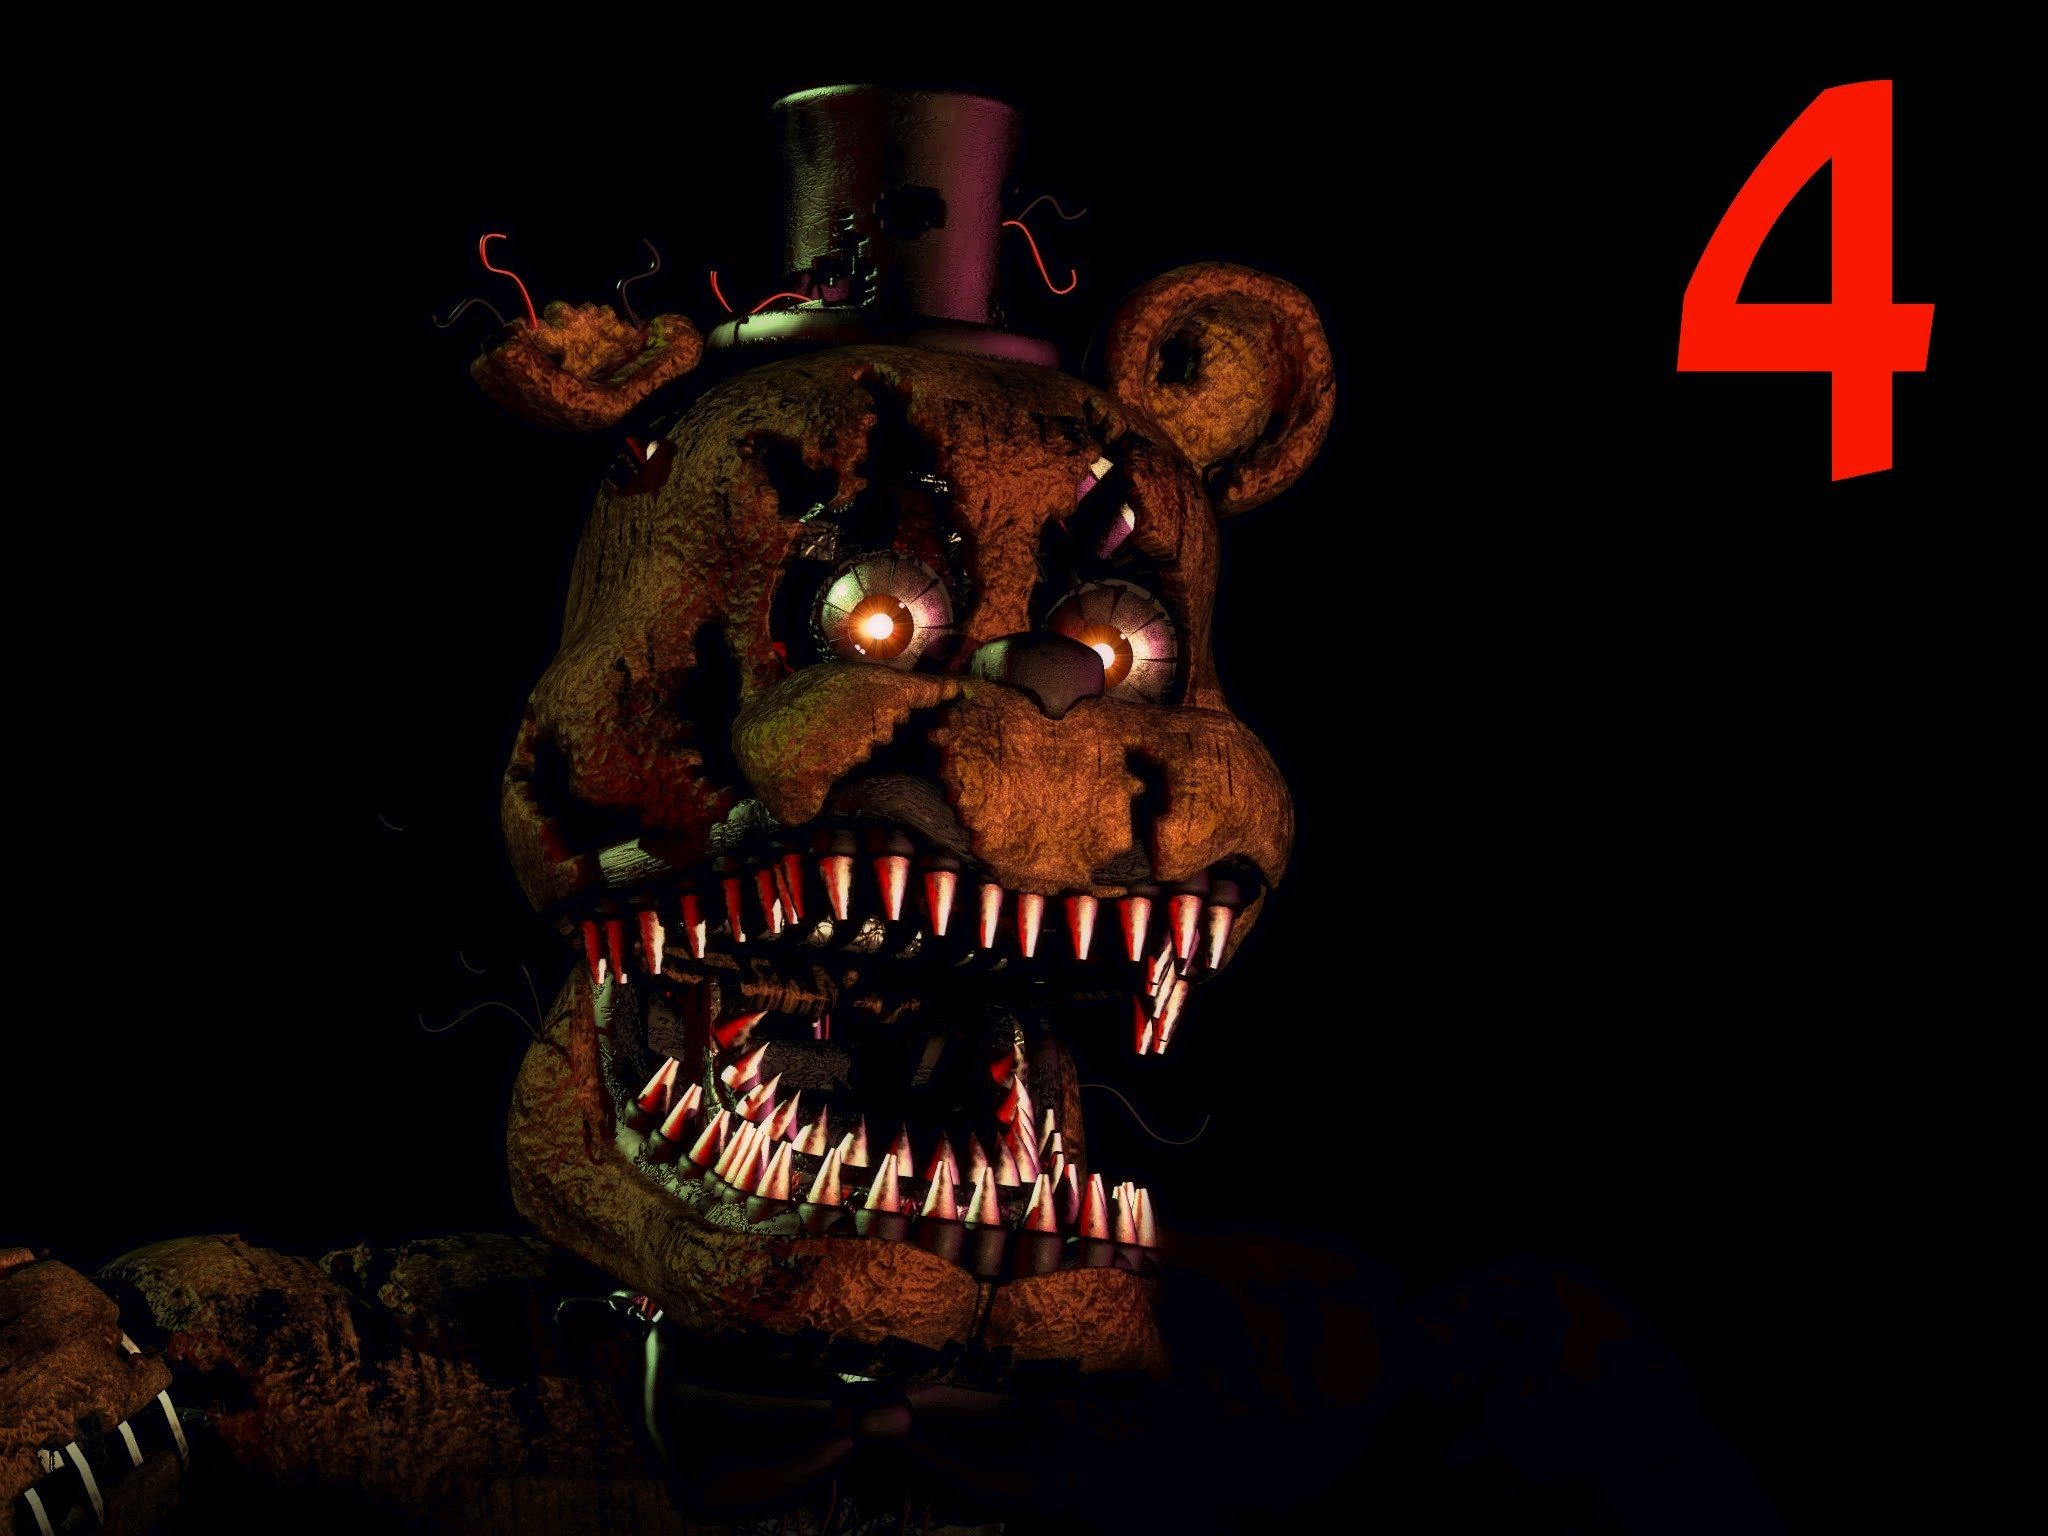 2048x1536 FNAF 4 IOS IS OUT!!